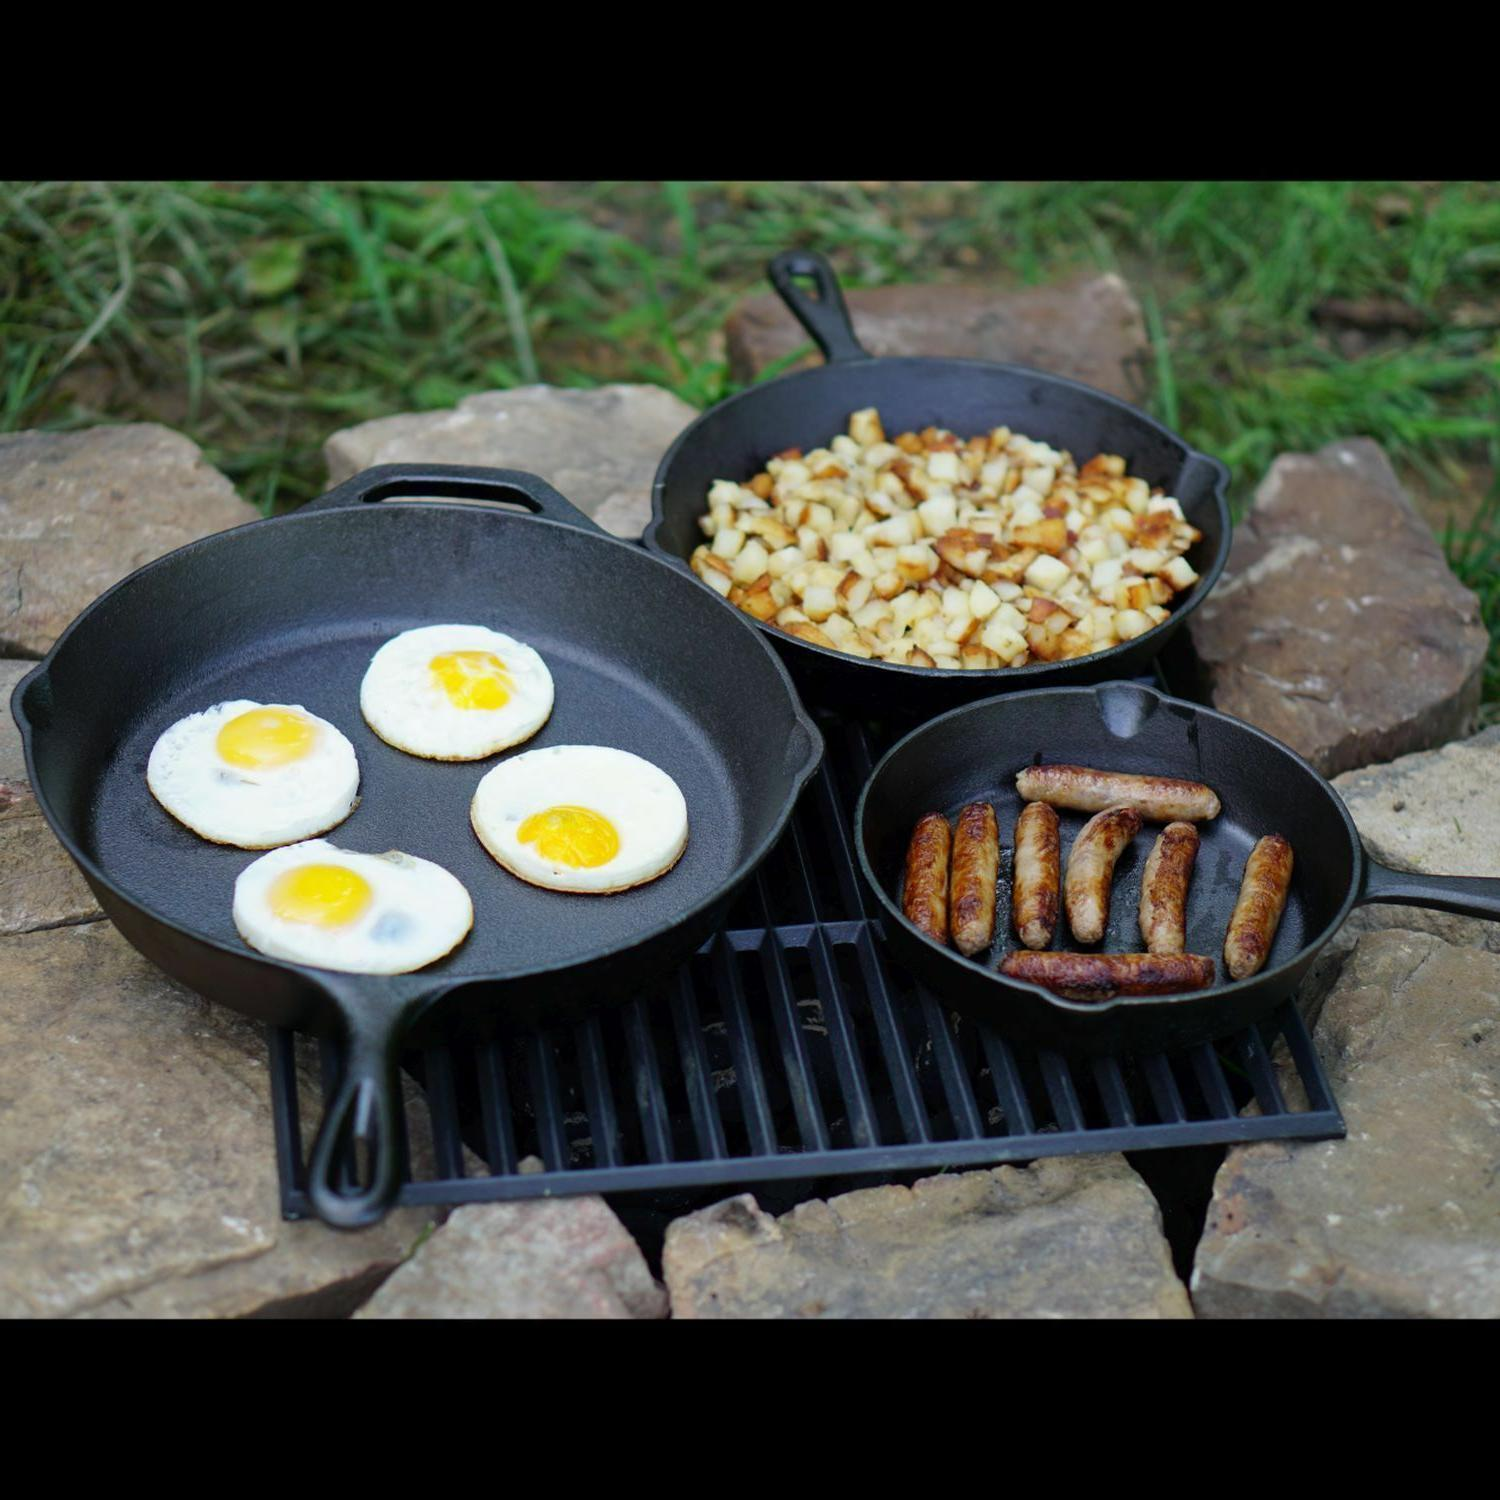 3 IRON Pre 12 Inch Stove Fry Pans Cookware Set